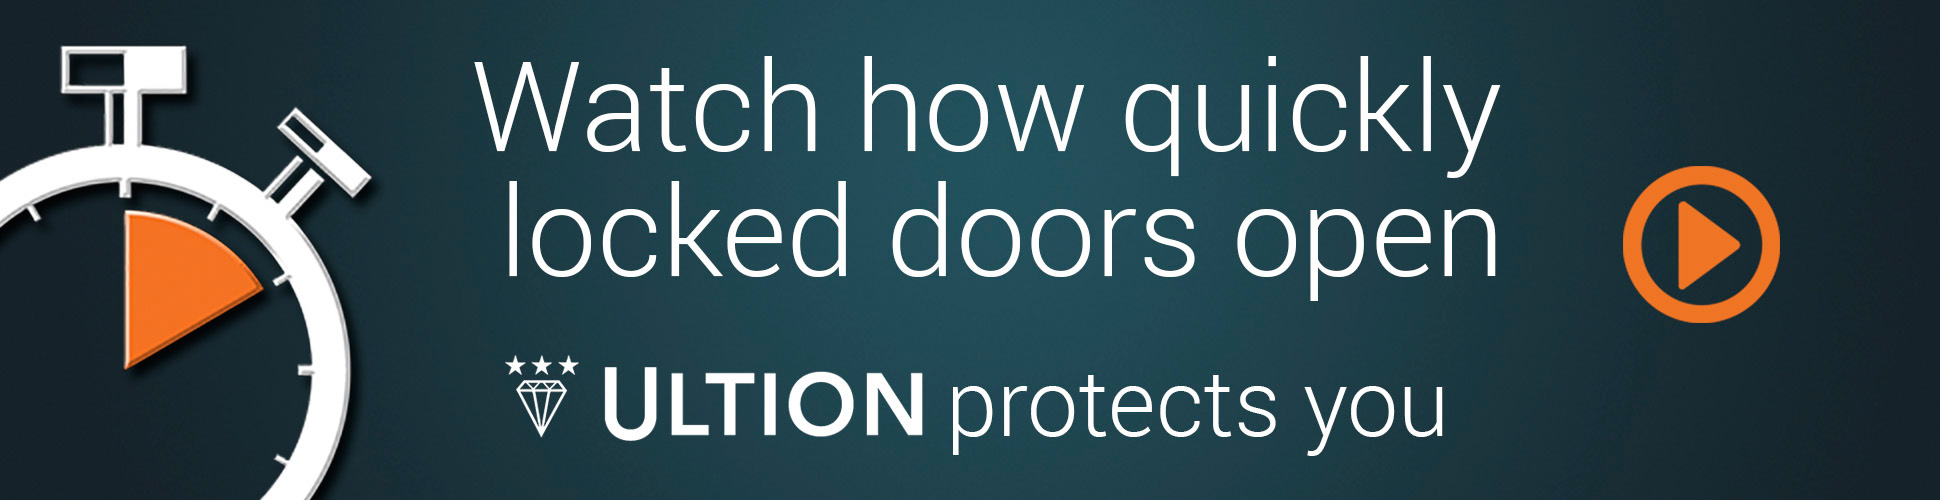 uPVC Doors Aberdeen, Aberdeenshire & North East Scotland Ultion Locks